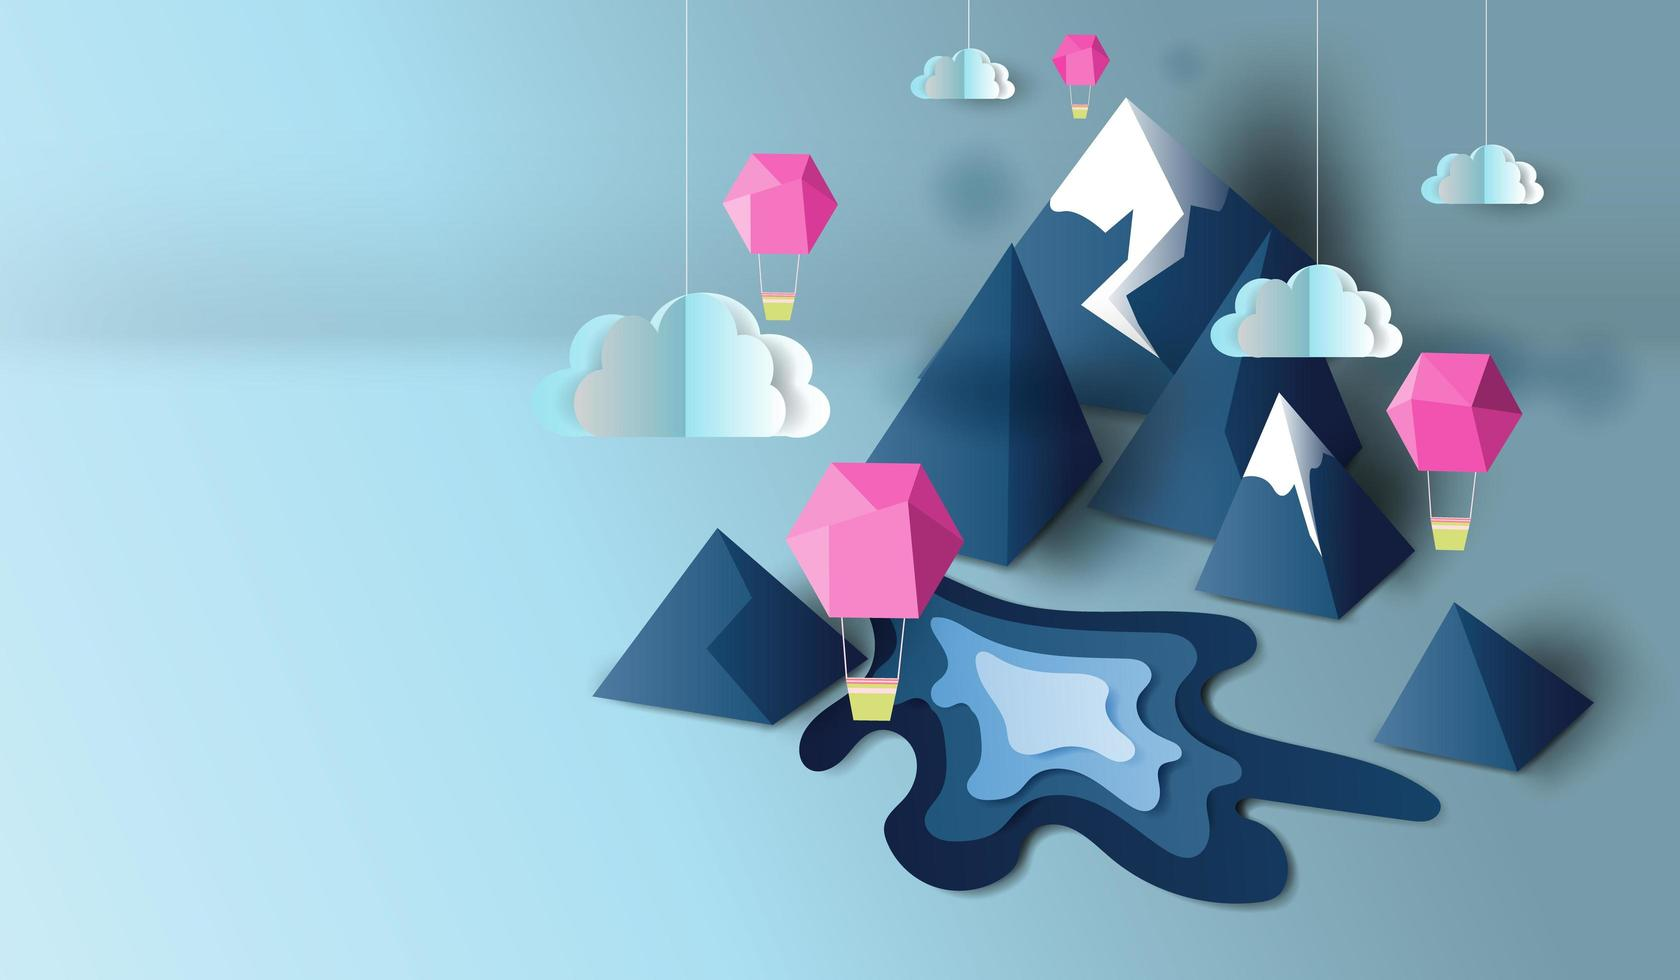 Paper cut art with 3D mountain view and balloons banner background vector